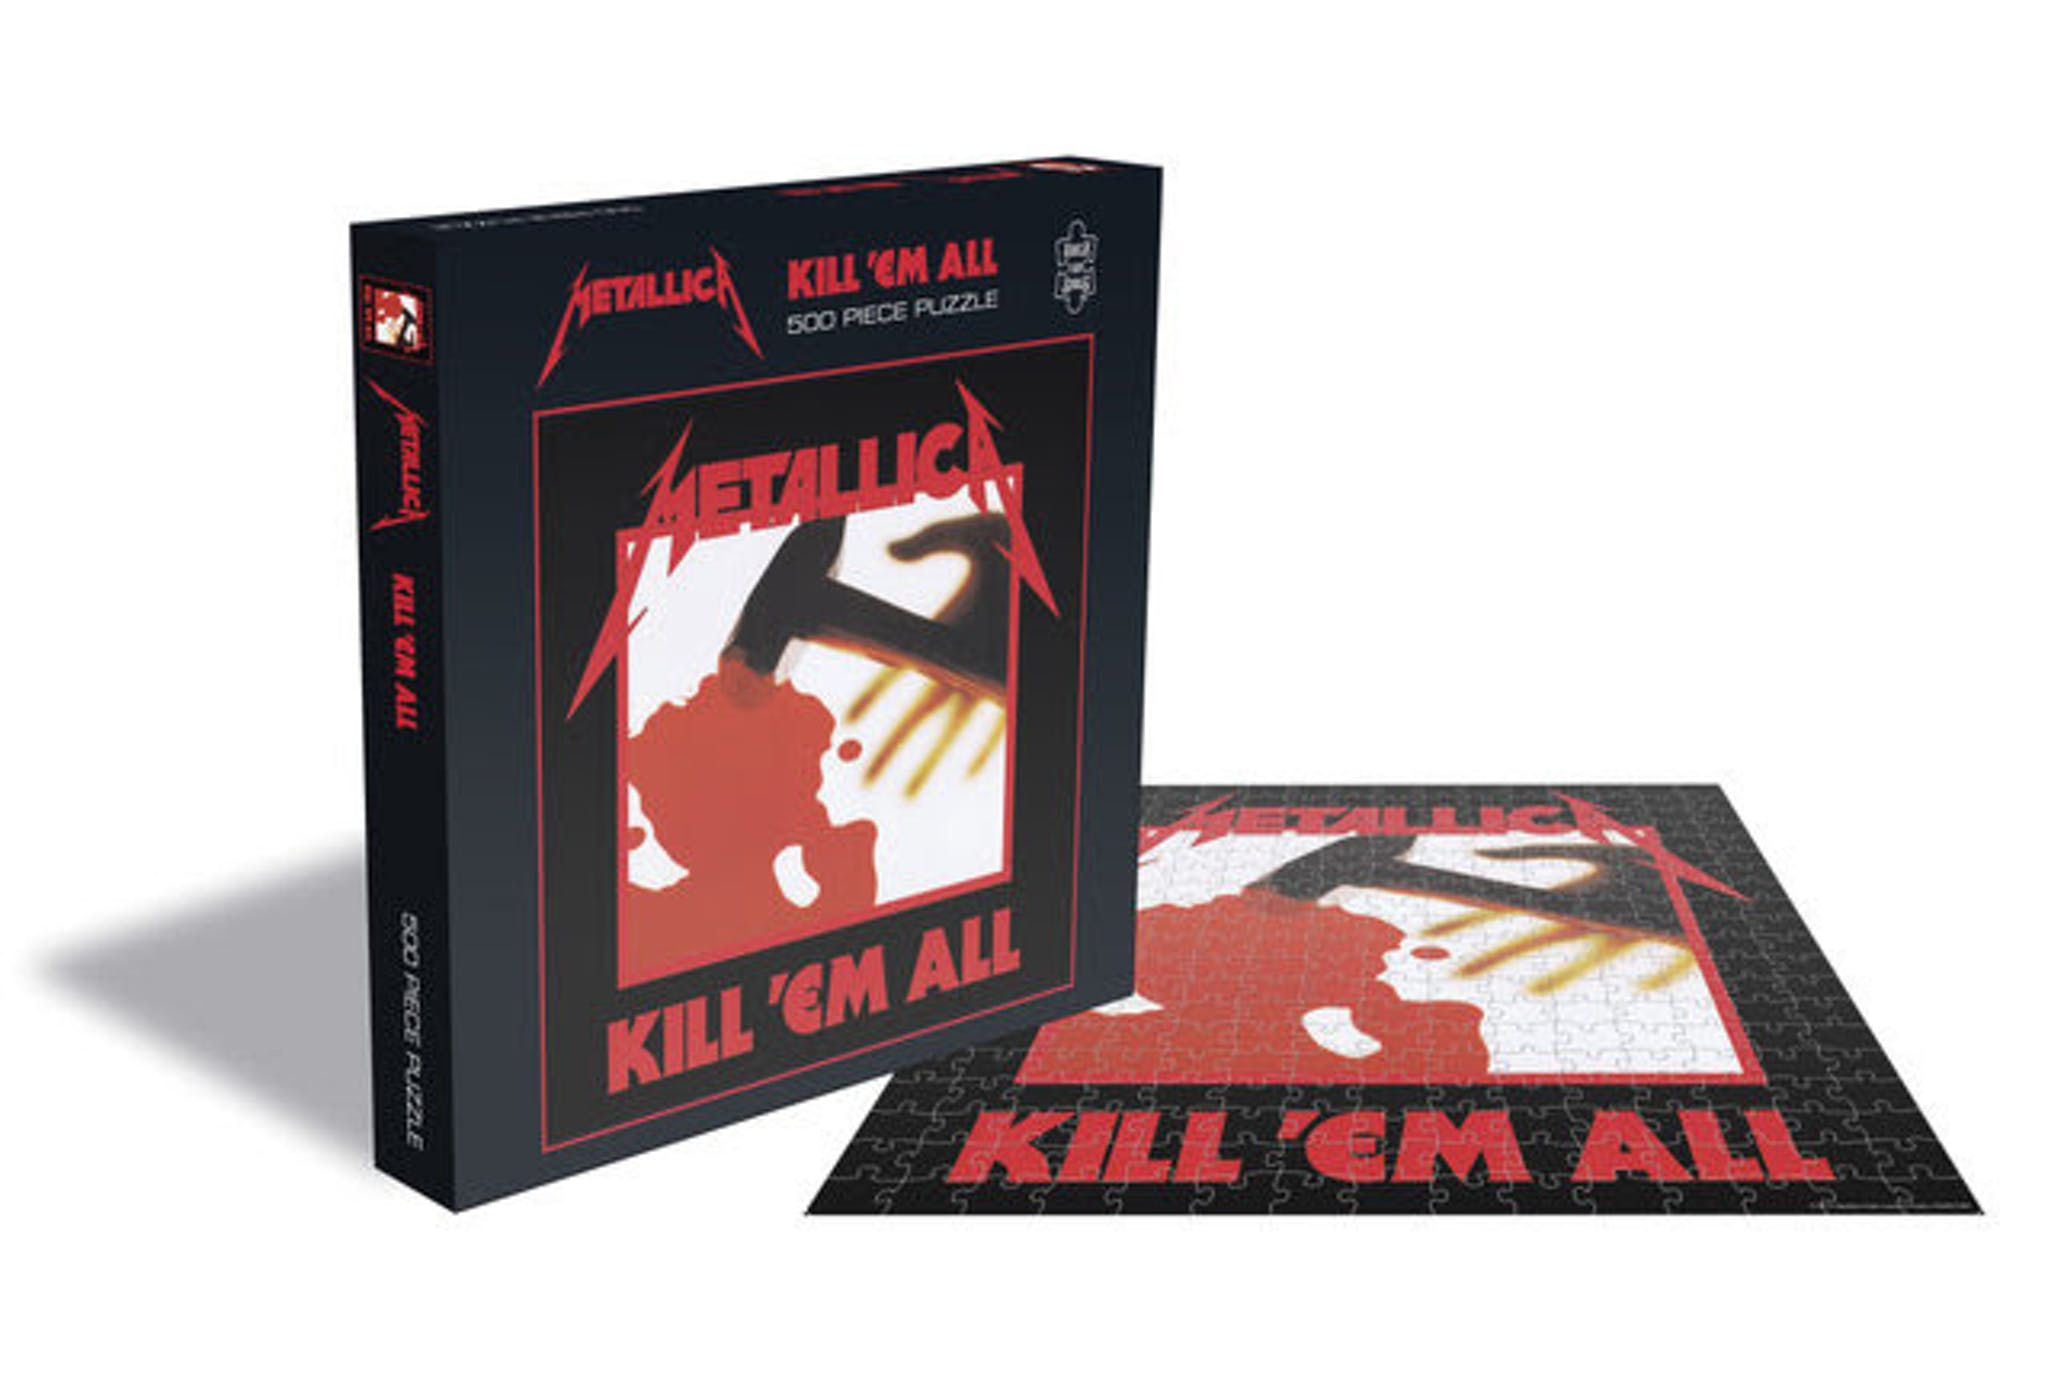 The First Four Metallica Albums' Covers Are Now Jigsaw Puzzles